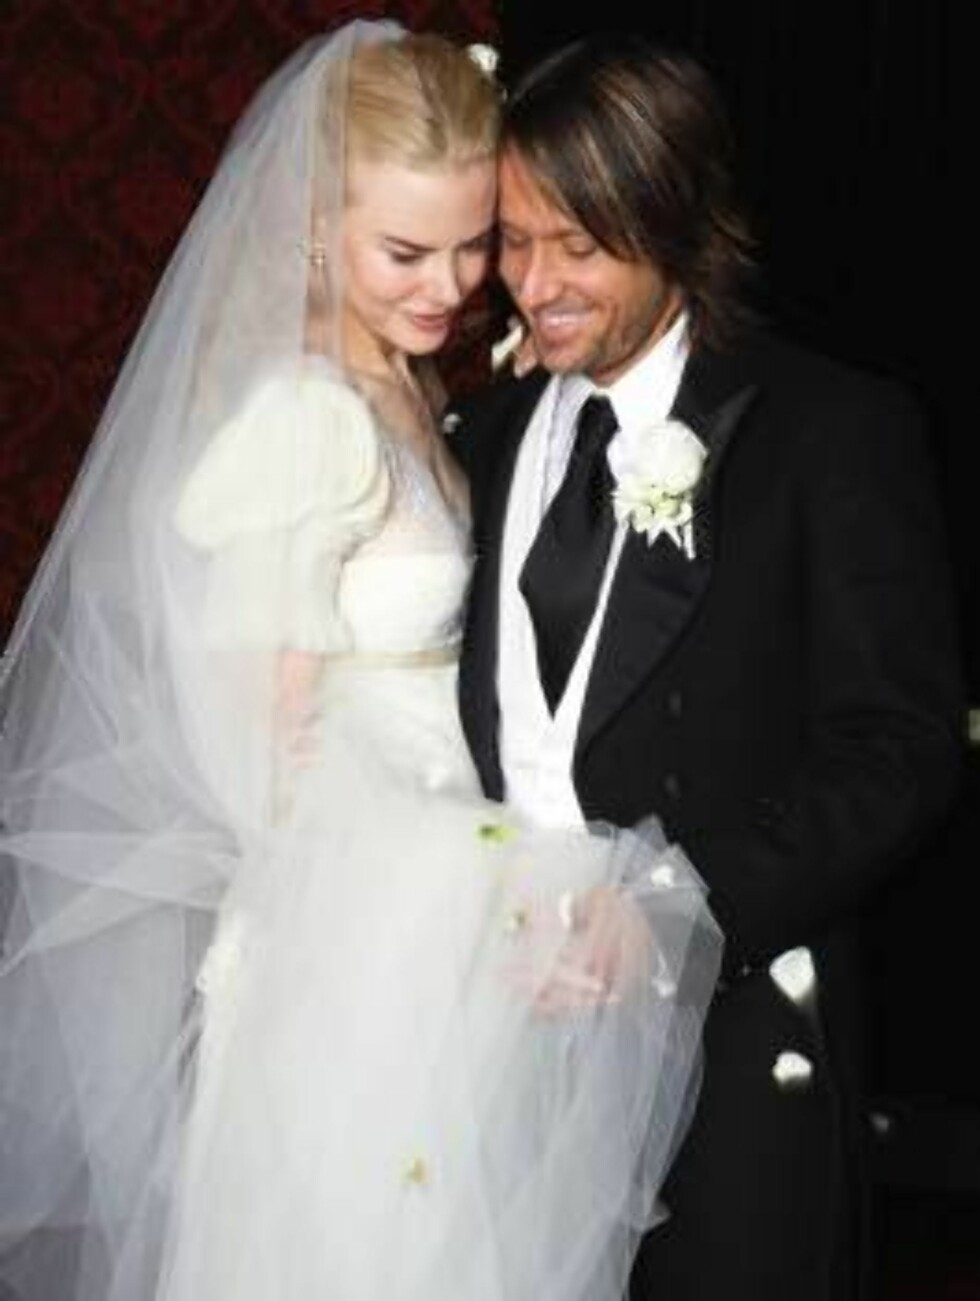 In this photo released by Nicole Kidman and Keith Urban,  the couple is seen shortly after their wedding ceremony in Sydney, Australia, Sunday June 25, 2006. Kidman married country crooner Urban on Sunday, shunning Hollywood glitz for a fairytale ceremony Foto: AP/Scanpix